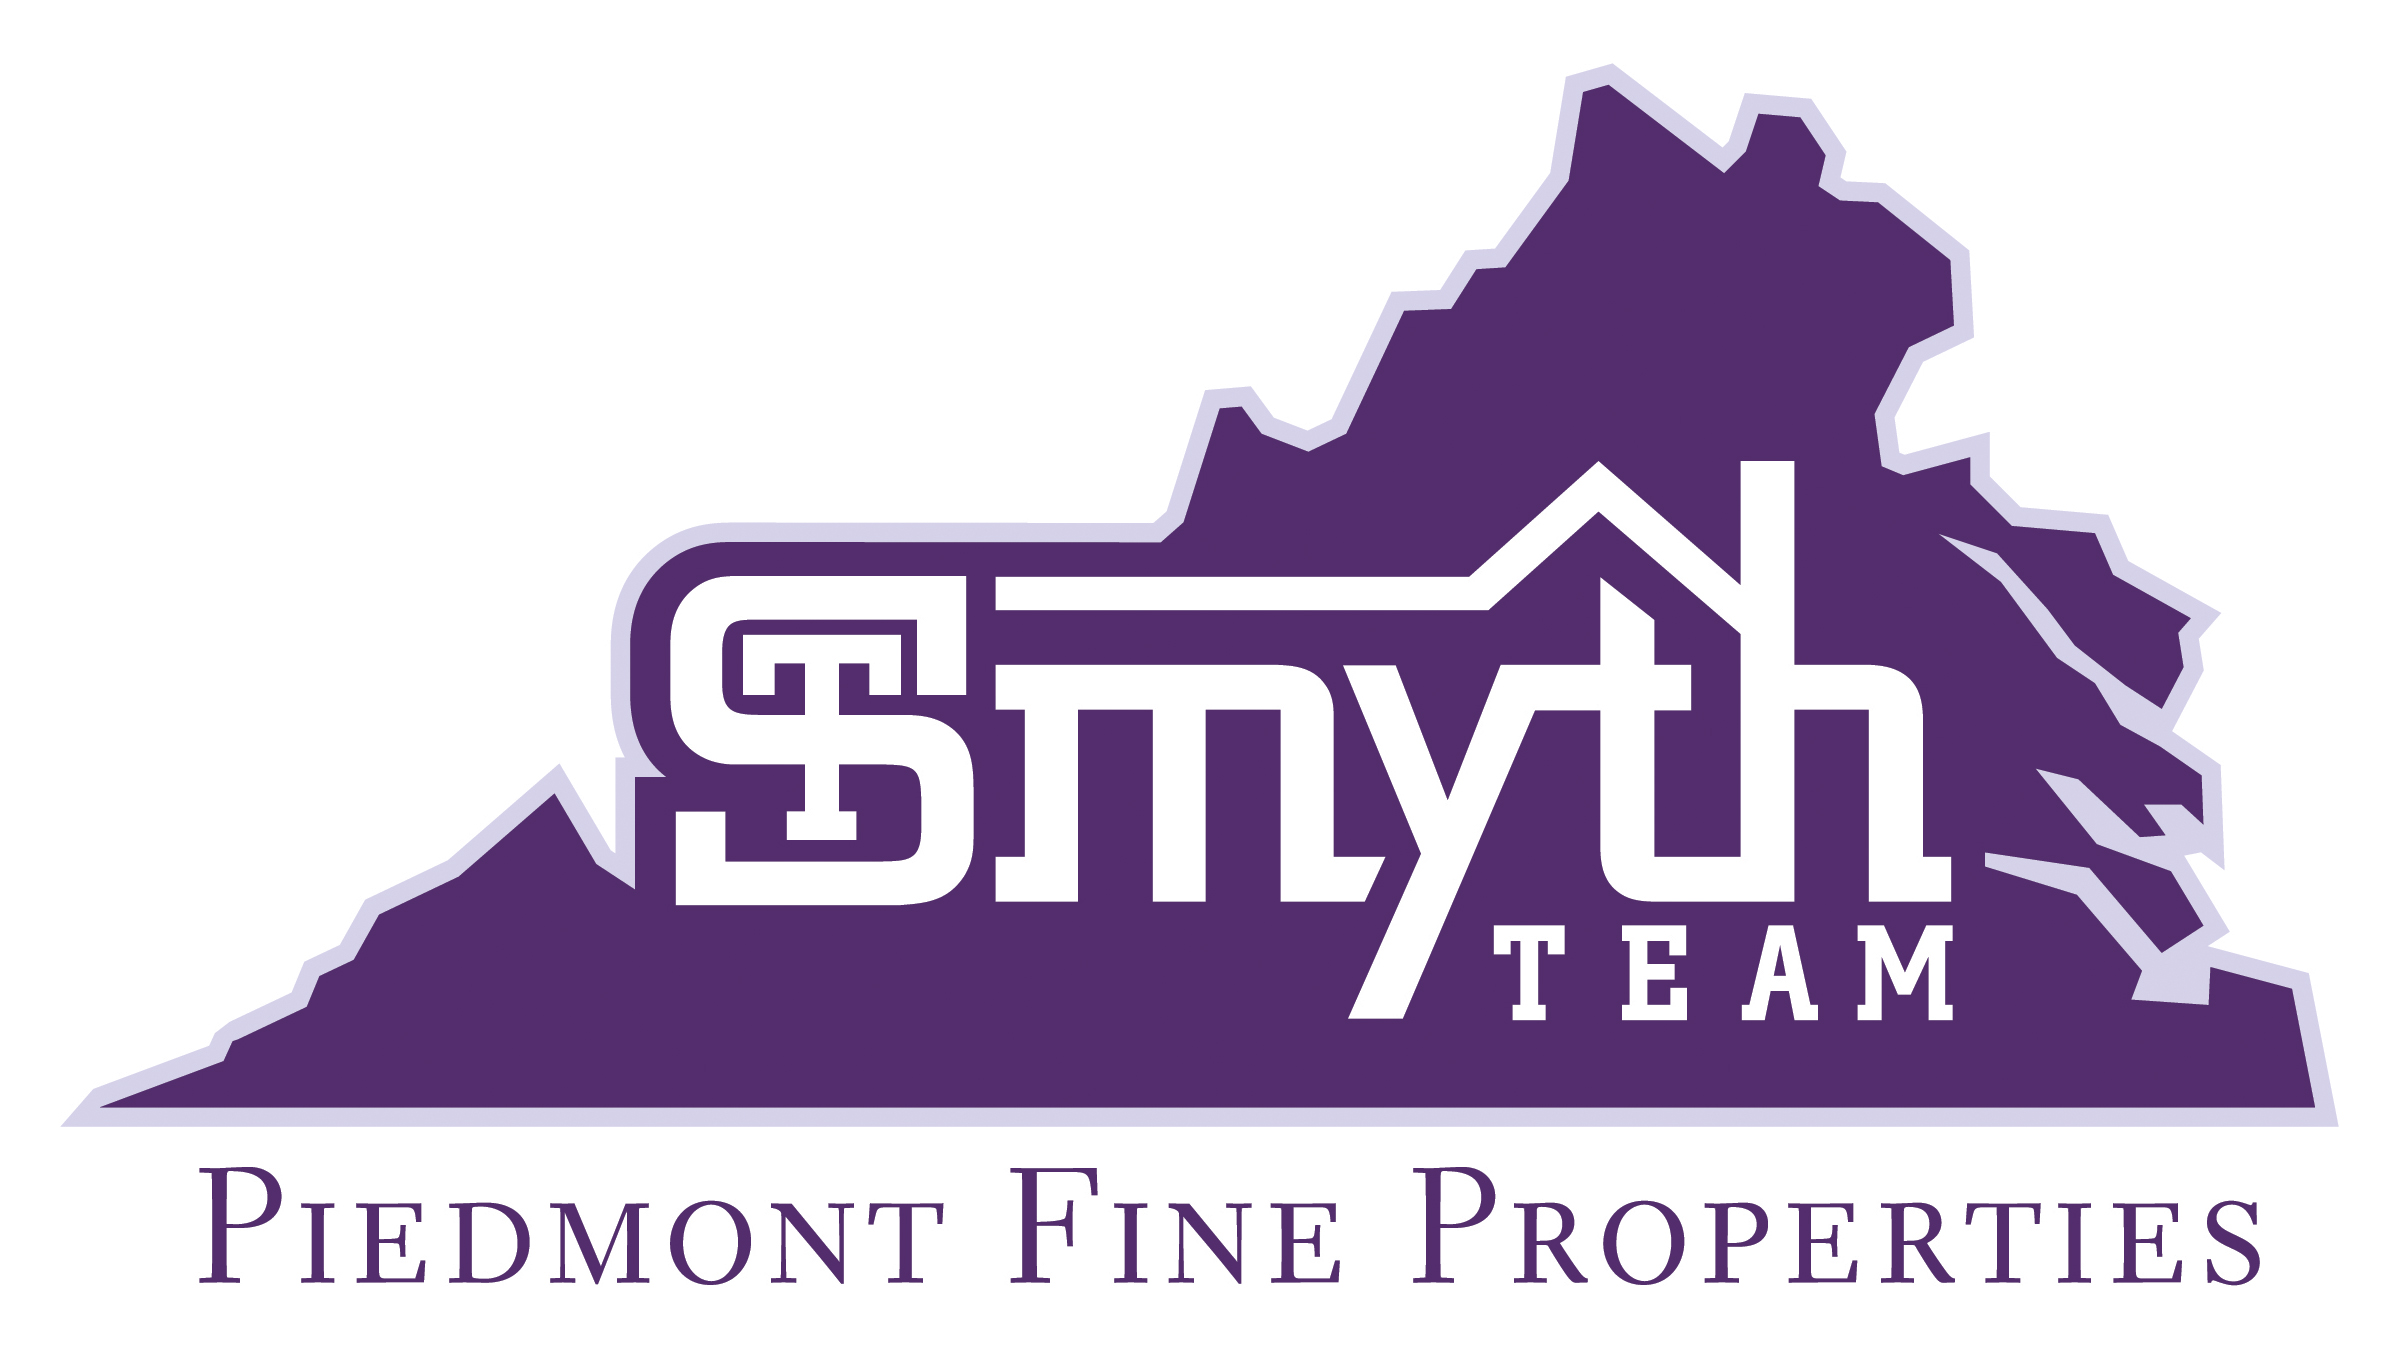 Freeman rudge amp dodd associates st bernard s grange solihull - The Smyth Team